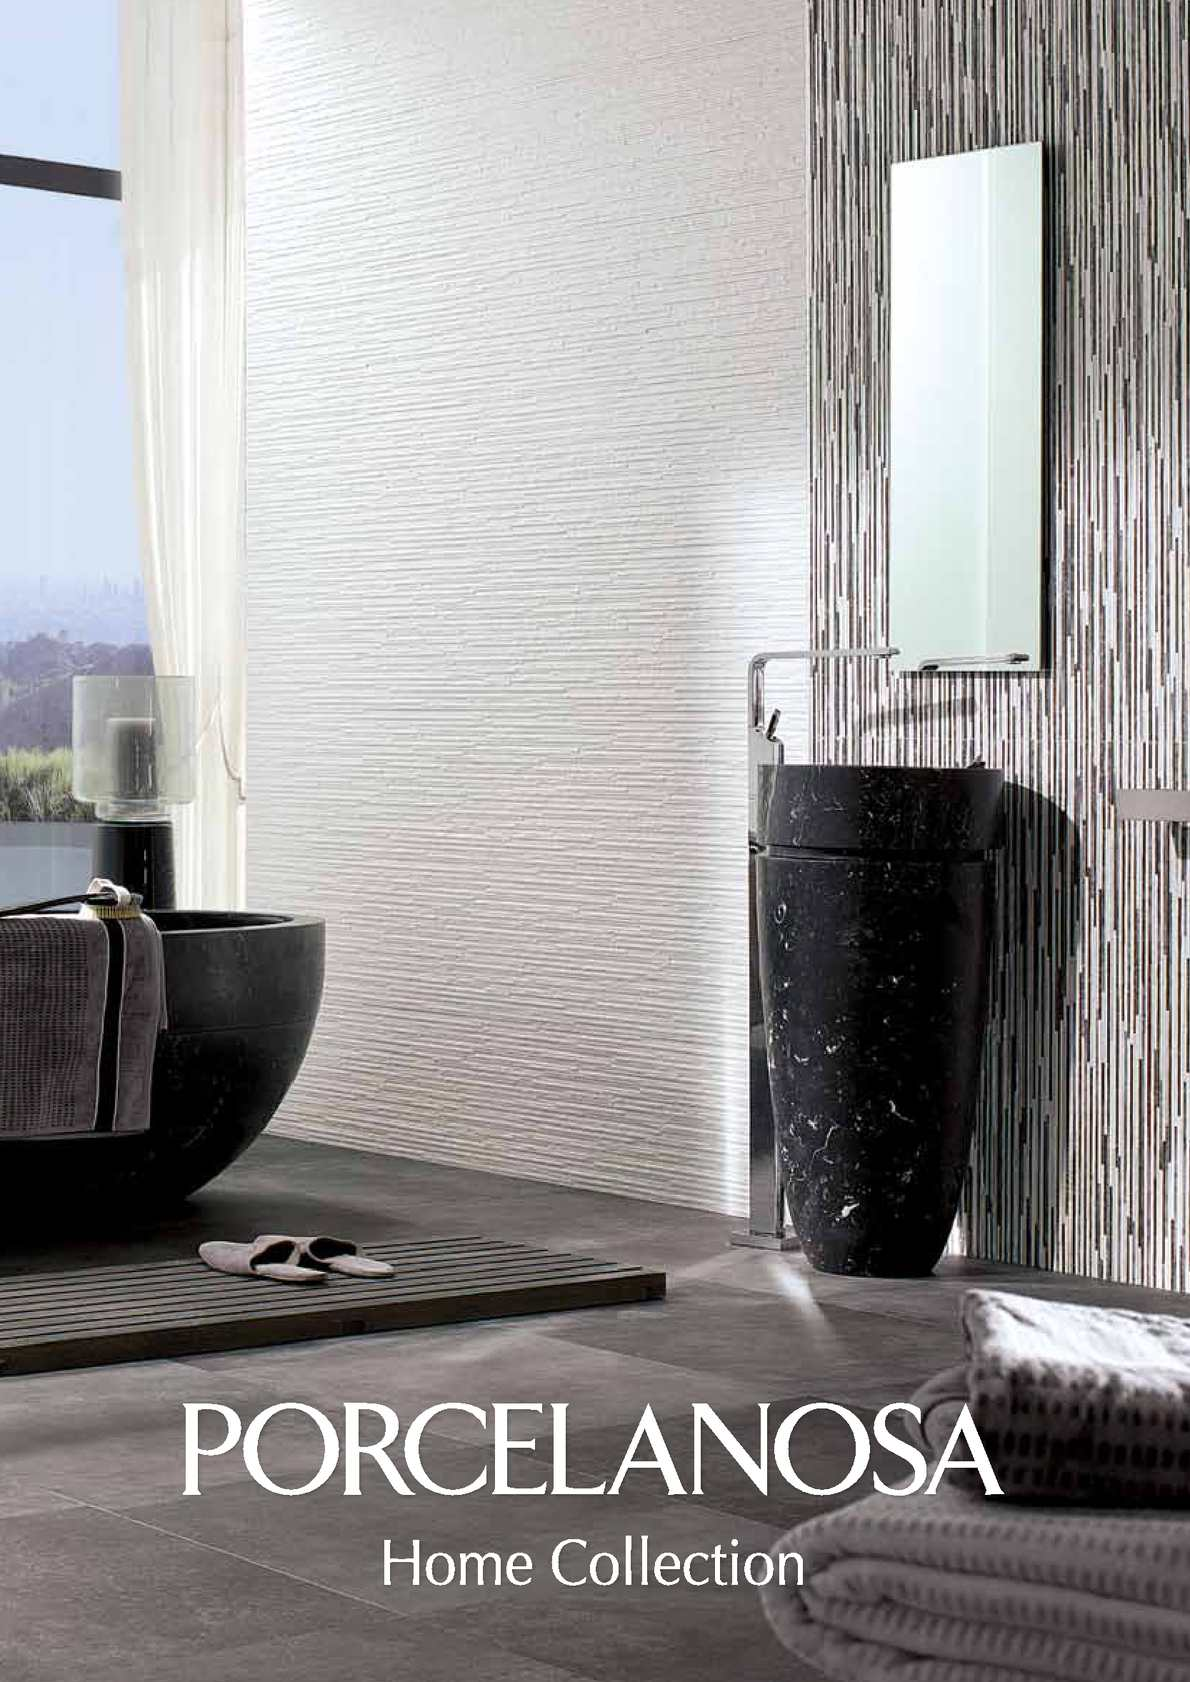 Calam o catalogue porcelanosa home collection for Porcelanosa carrelage salle de bain